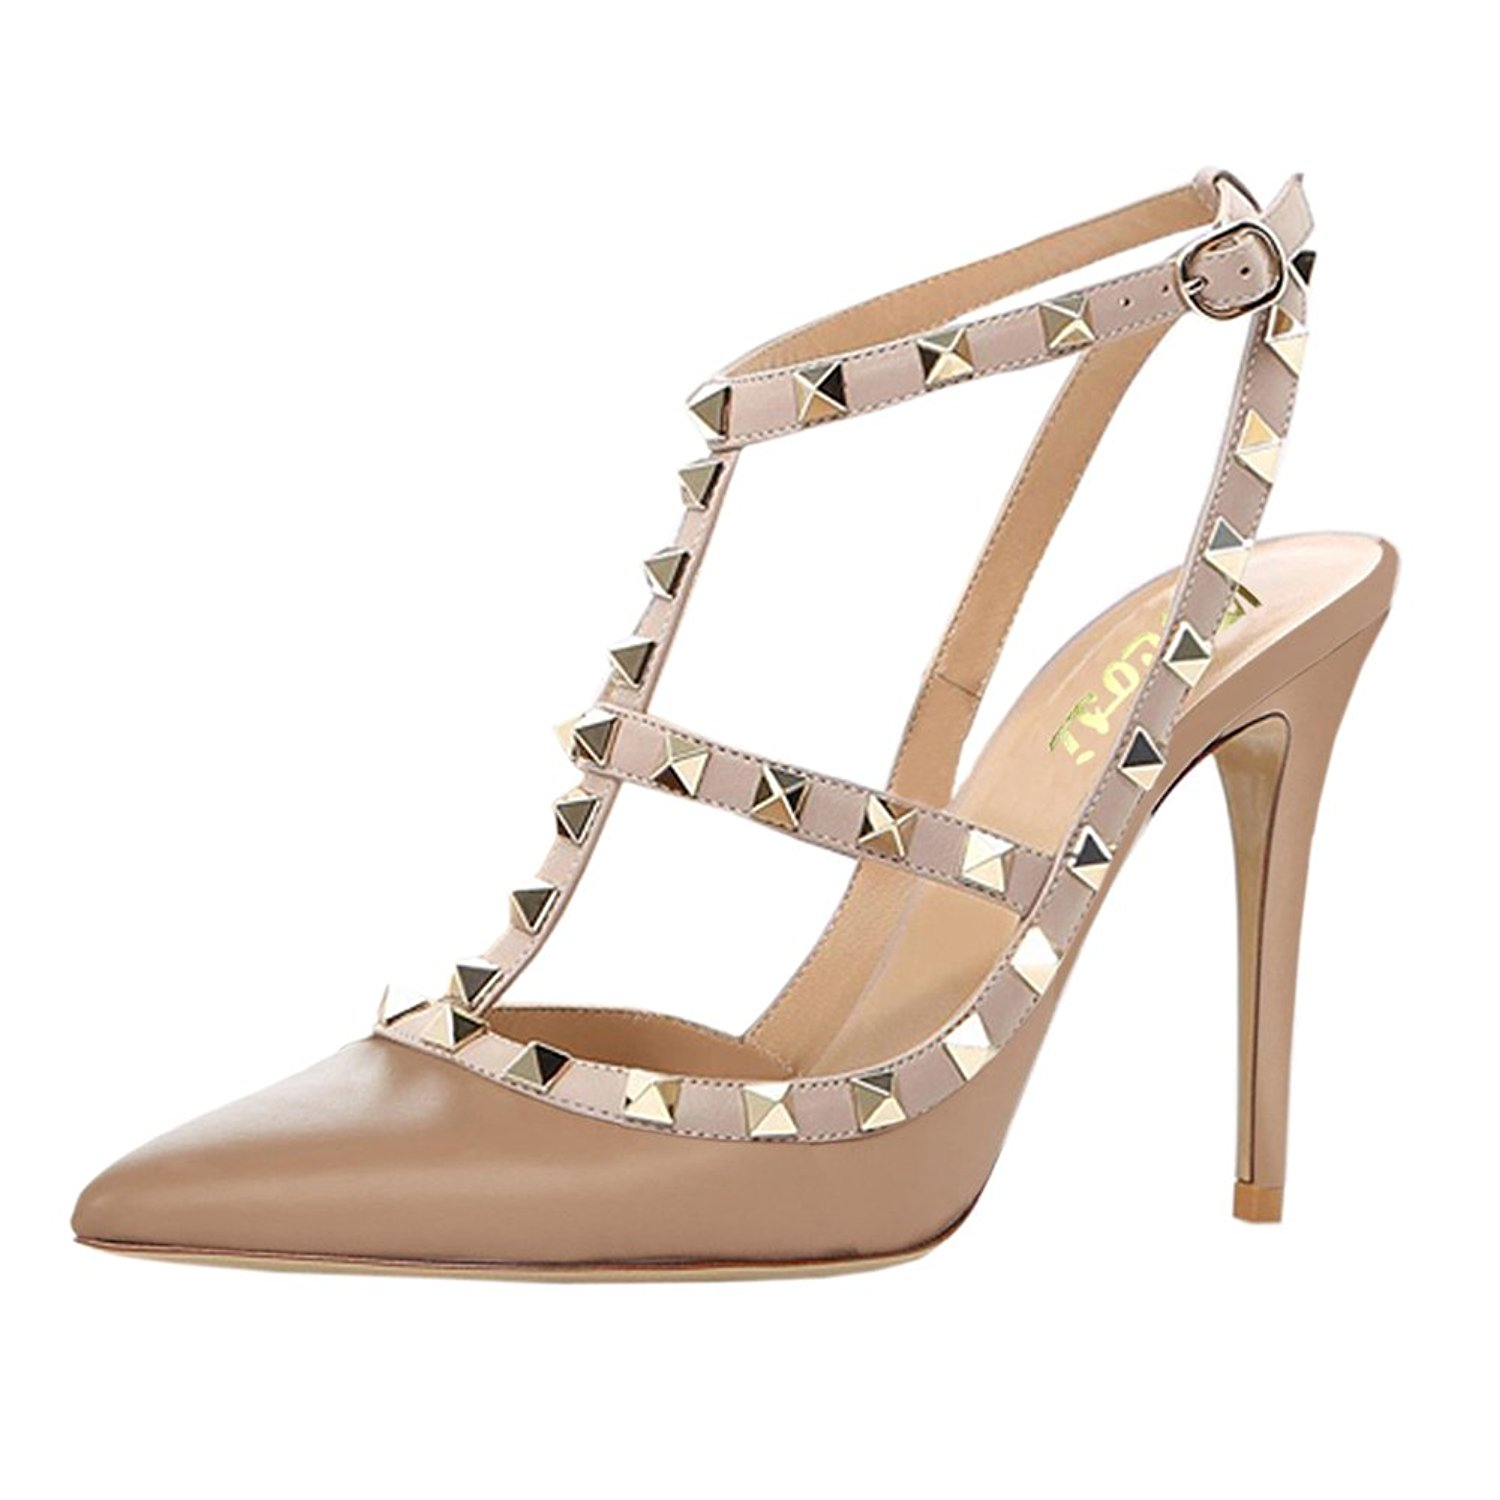 52b768099025 Get Quotations · VOCOSI Women s Pointed Toe Studded Ankle Strap Slingback  Stiletto Heels Dress Party Wedding Rivets Sandals